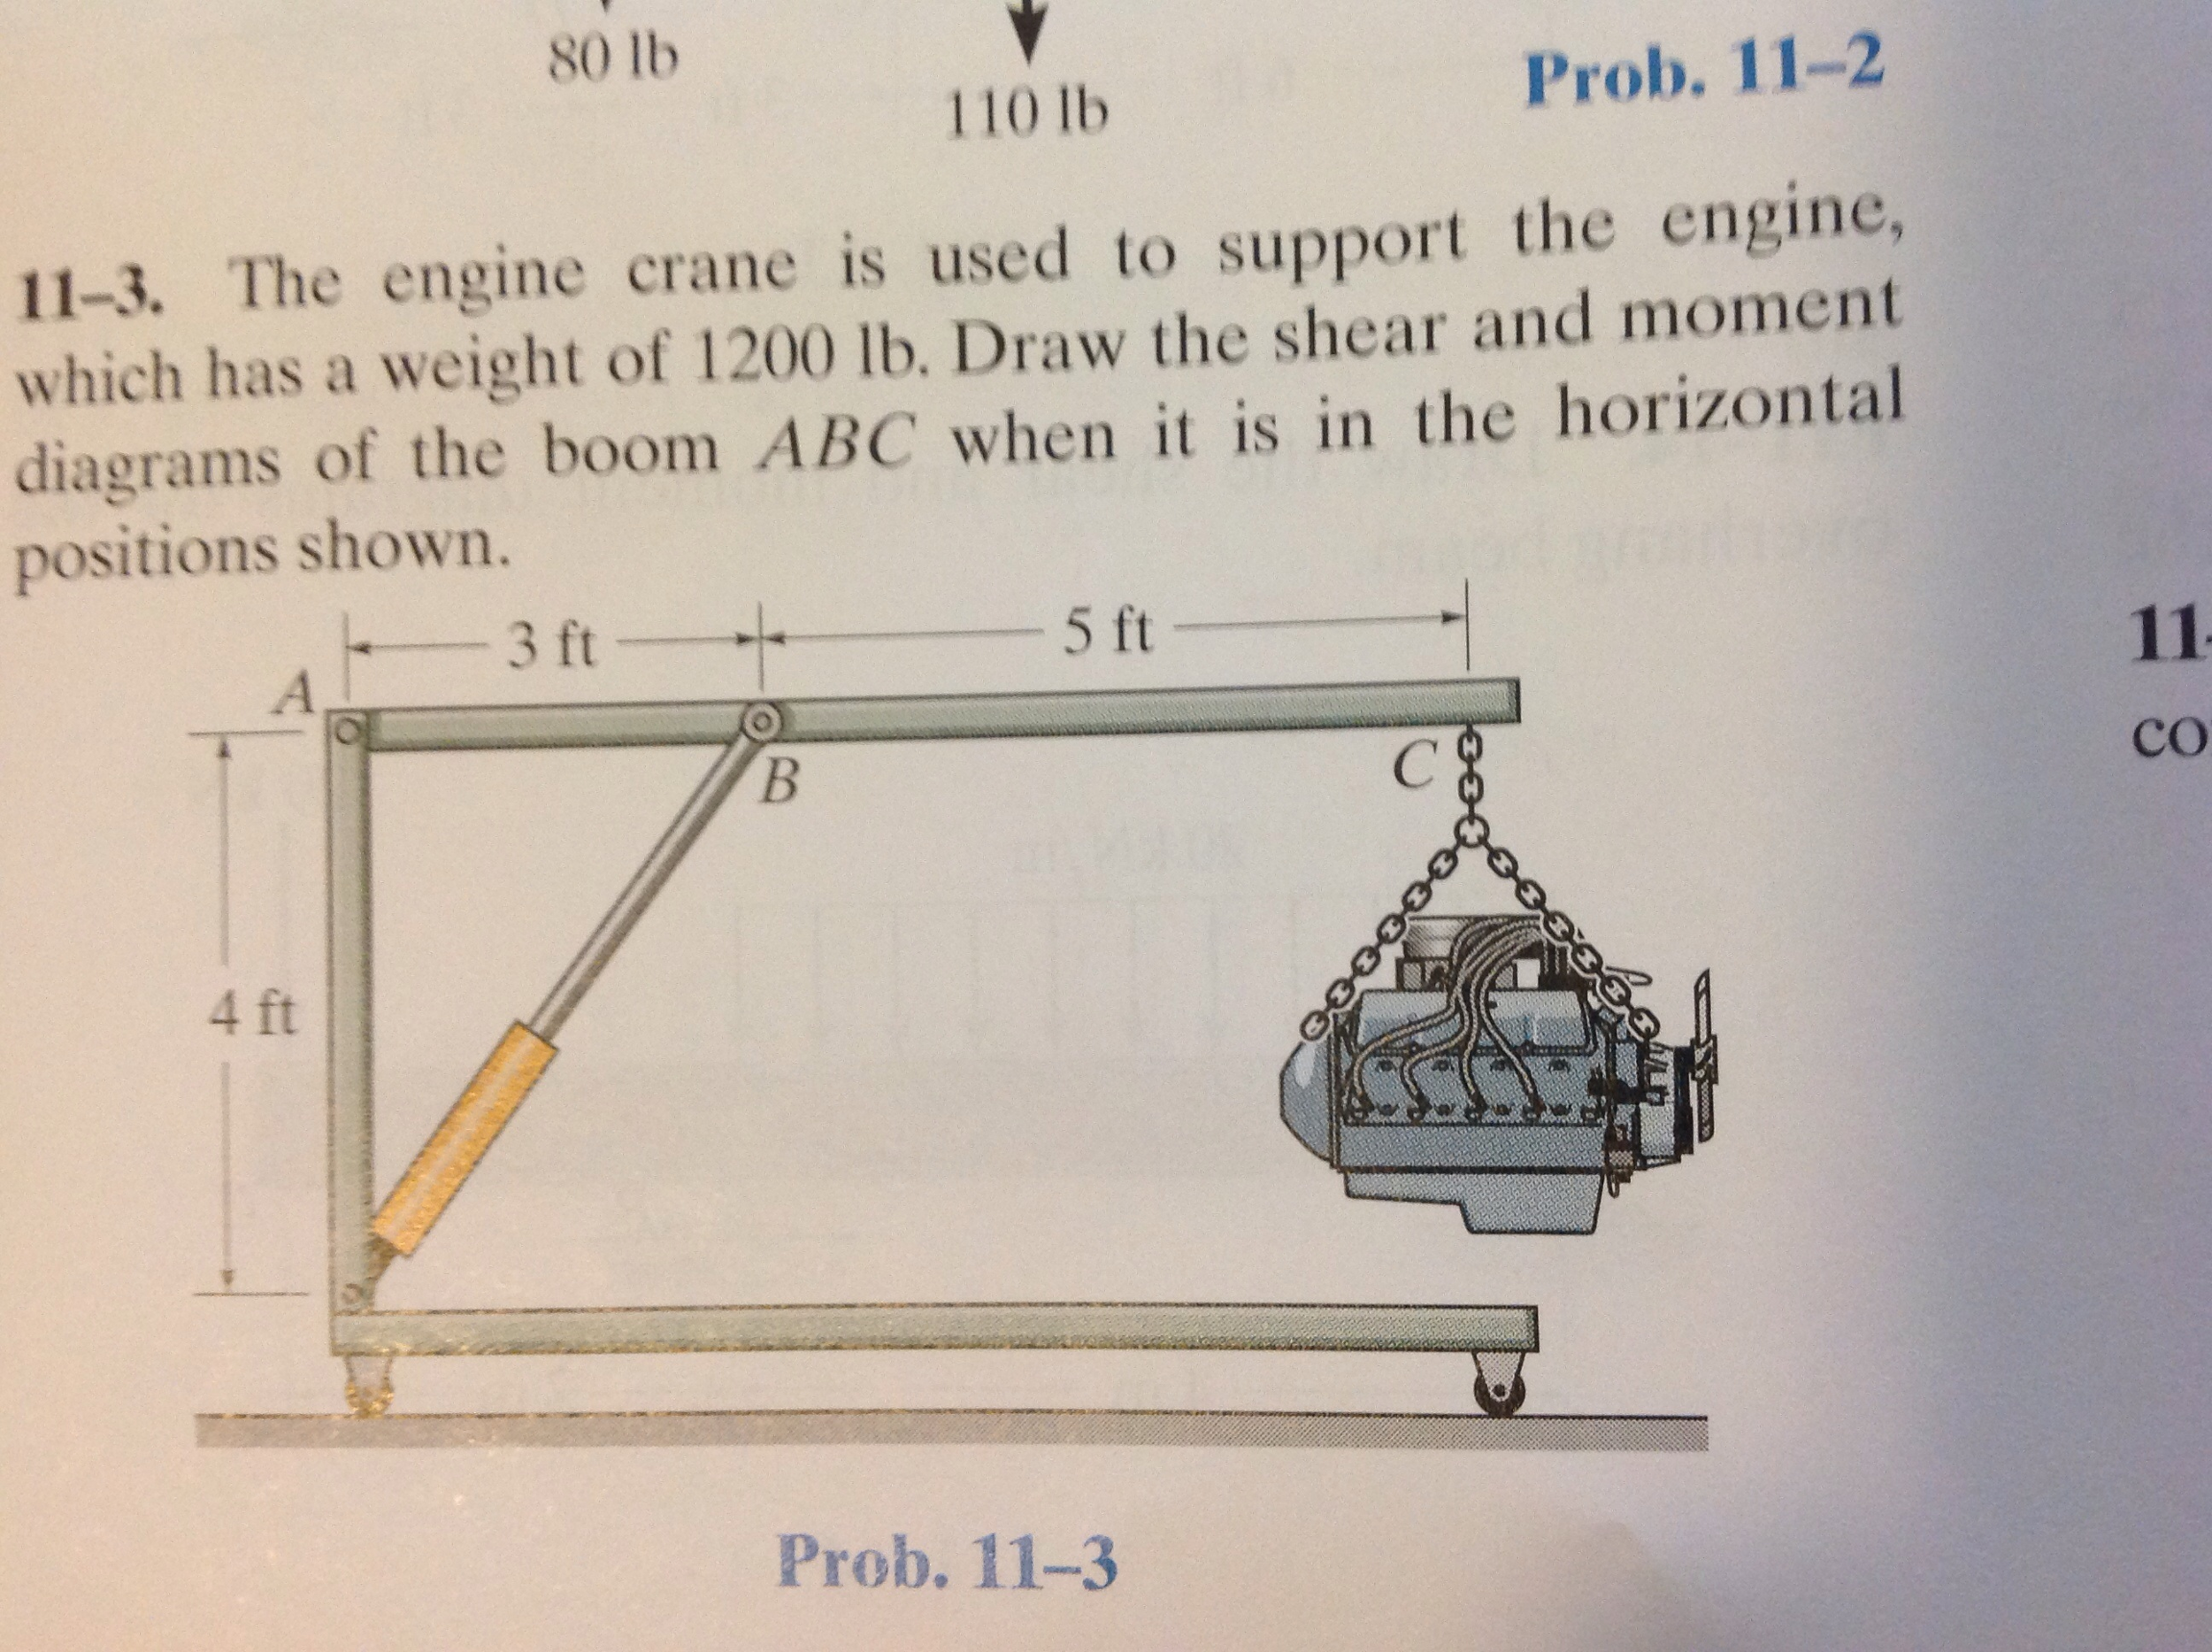 Question: The engine crane is used to support the engine, which has a  weight of 1200 lb. Draw the shear and.